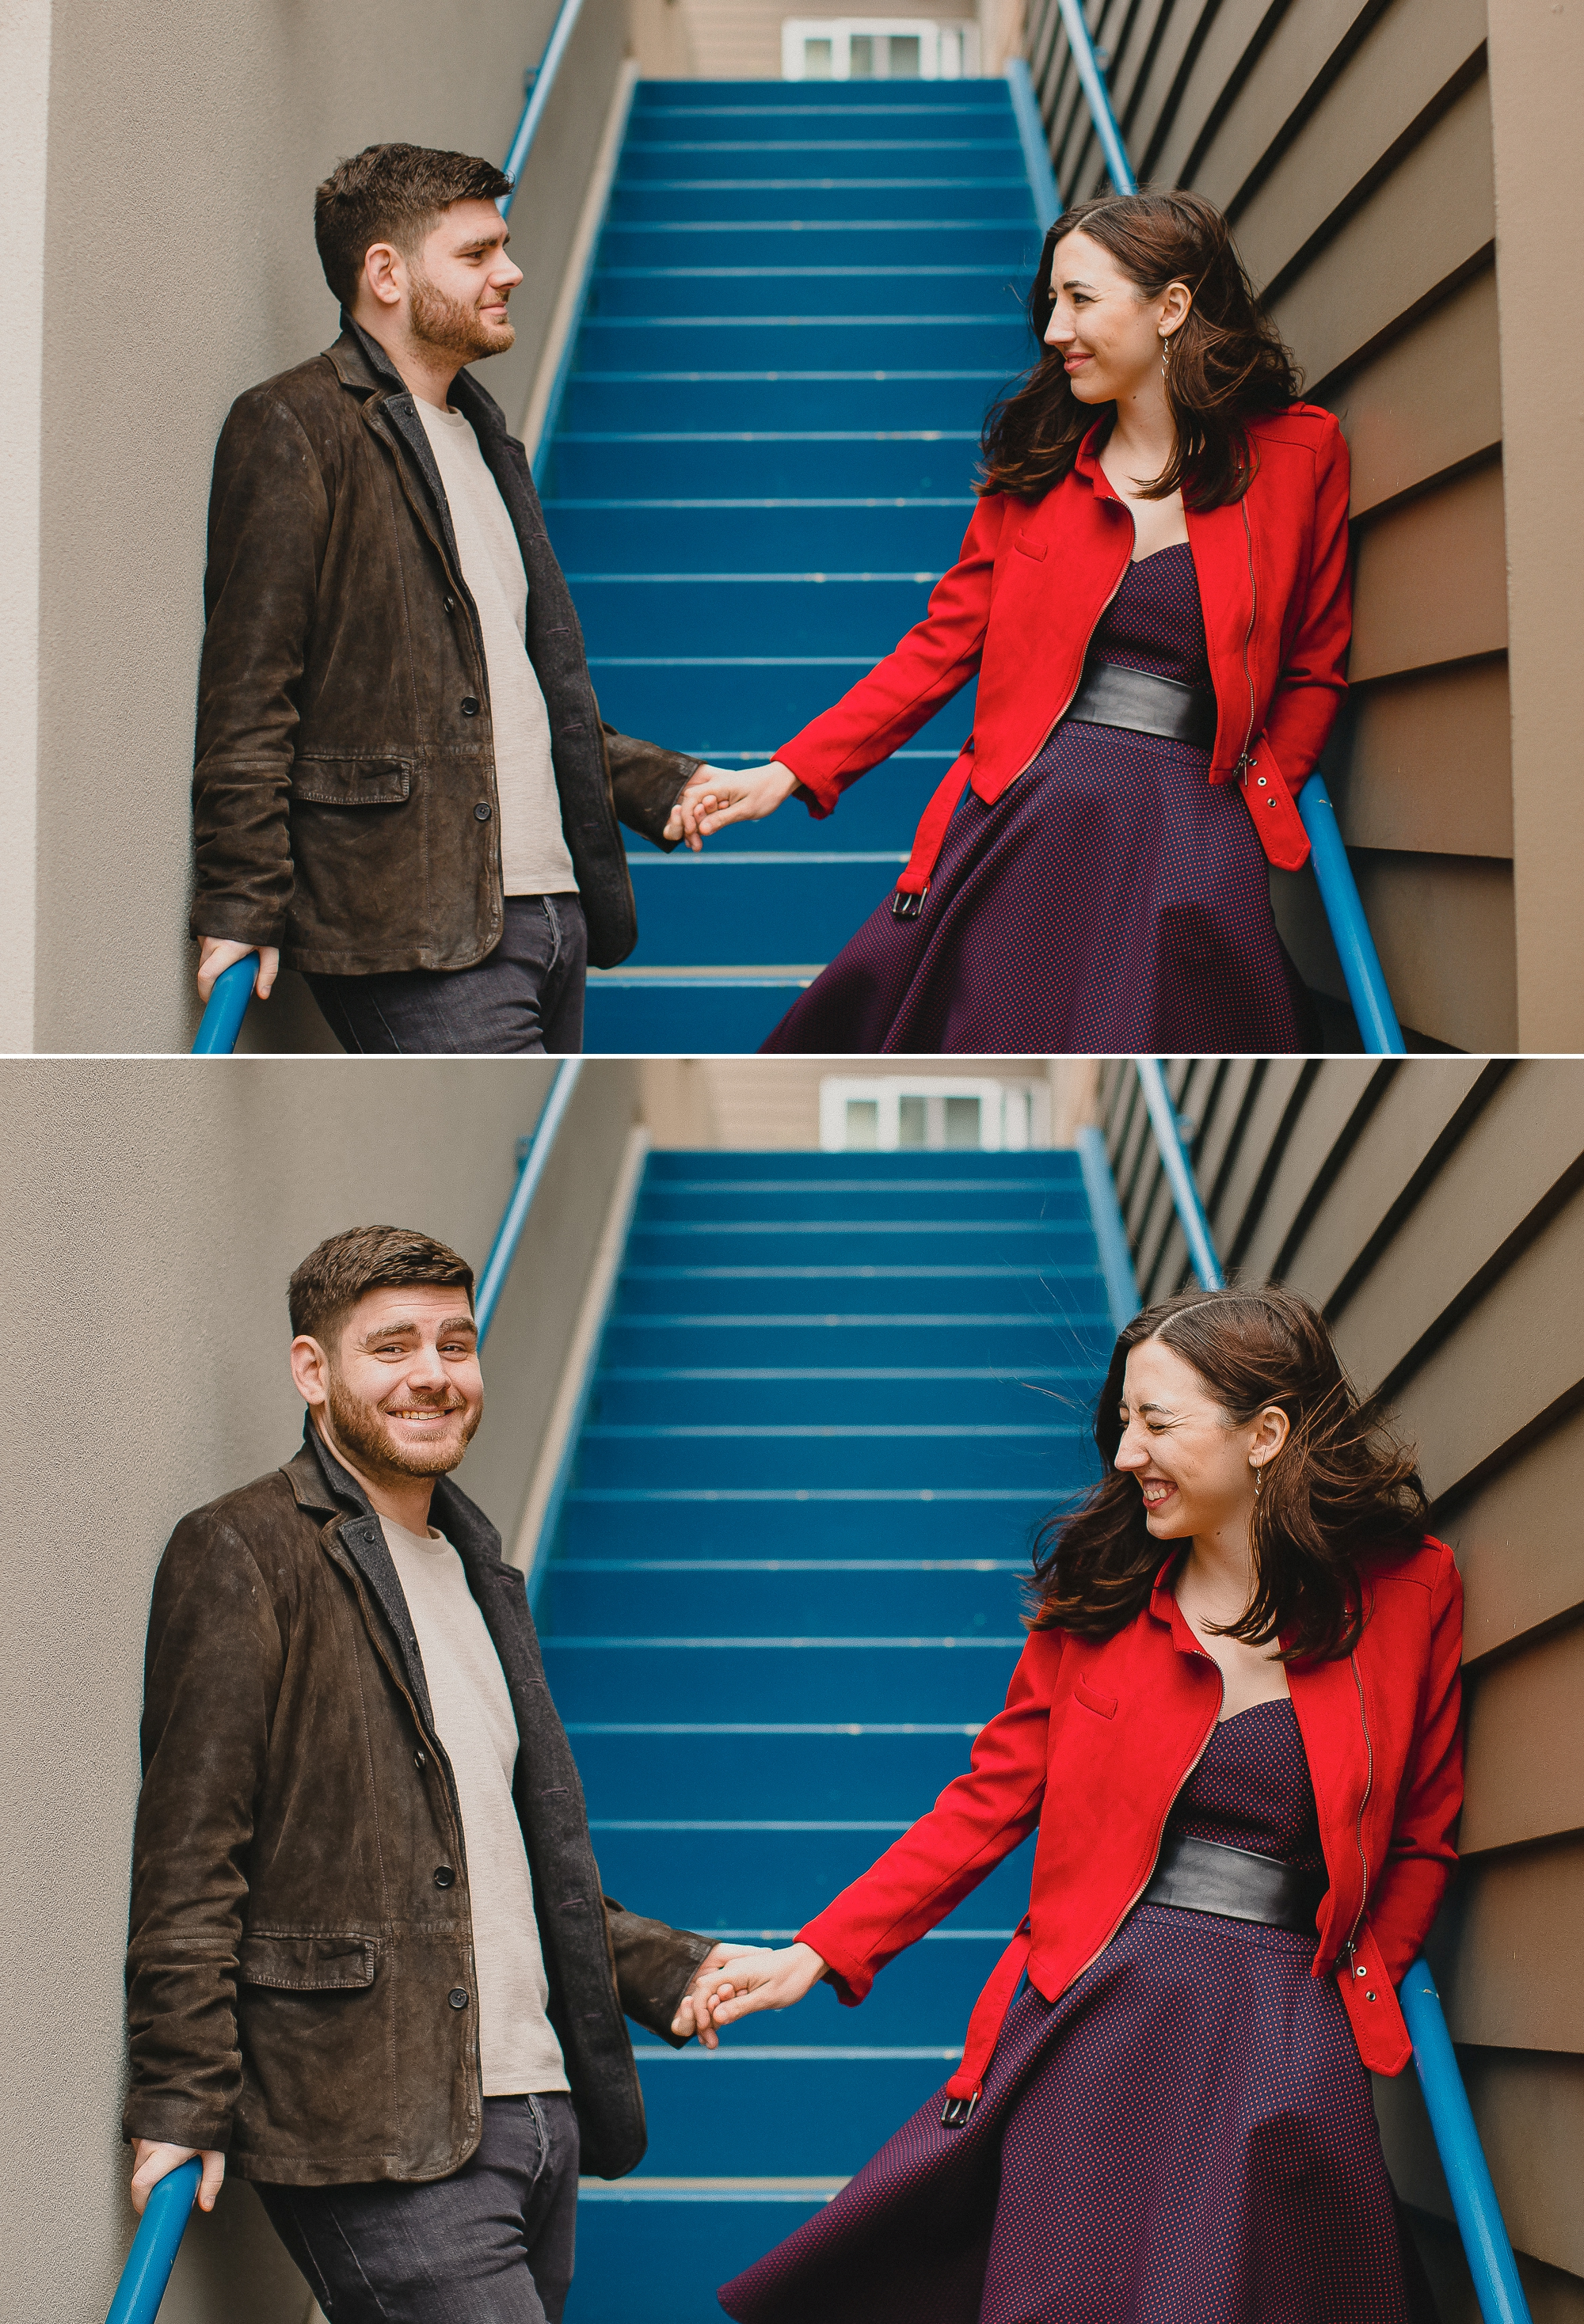 berkeley-engagement-session 2.jpg